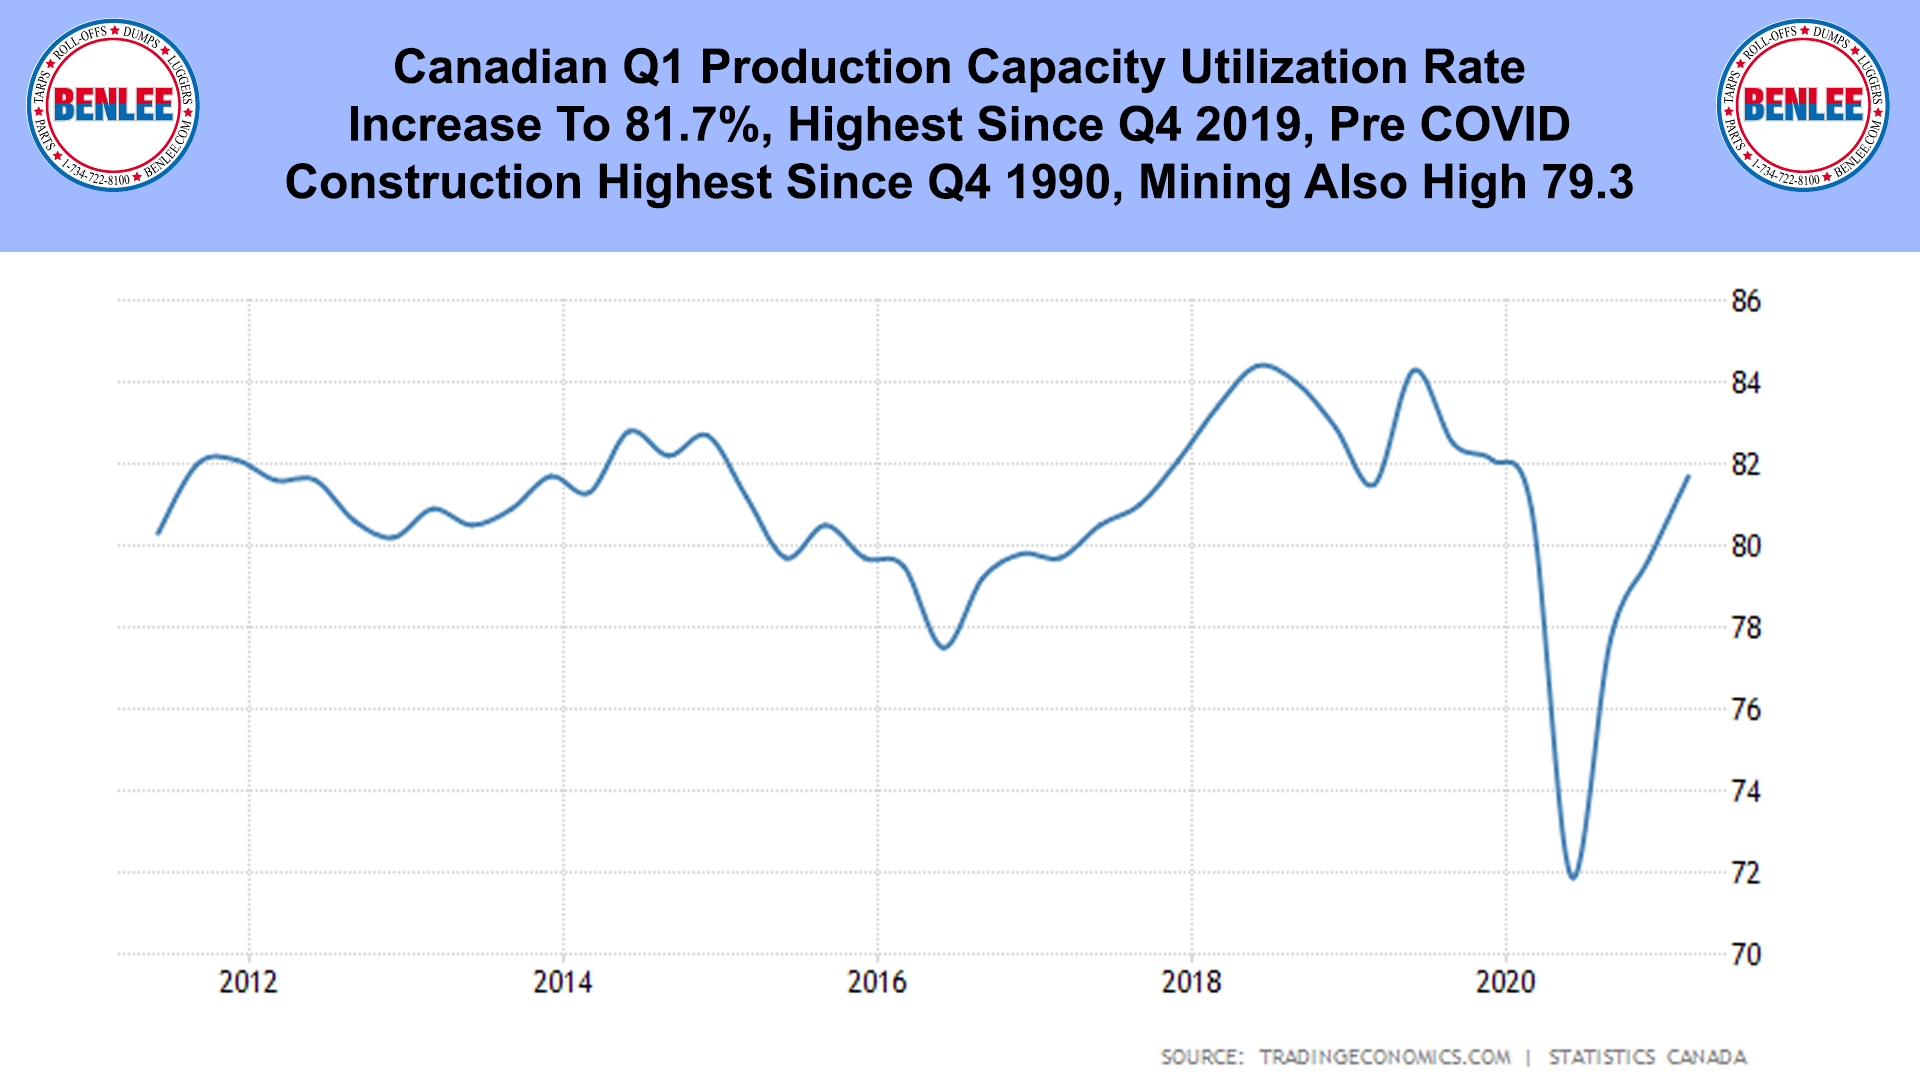 Canadian Q1 Production Capacity Utilization Rate